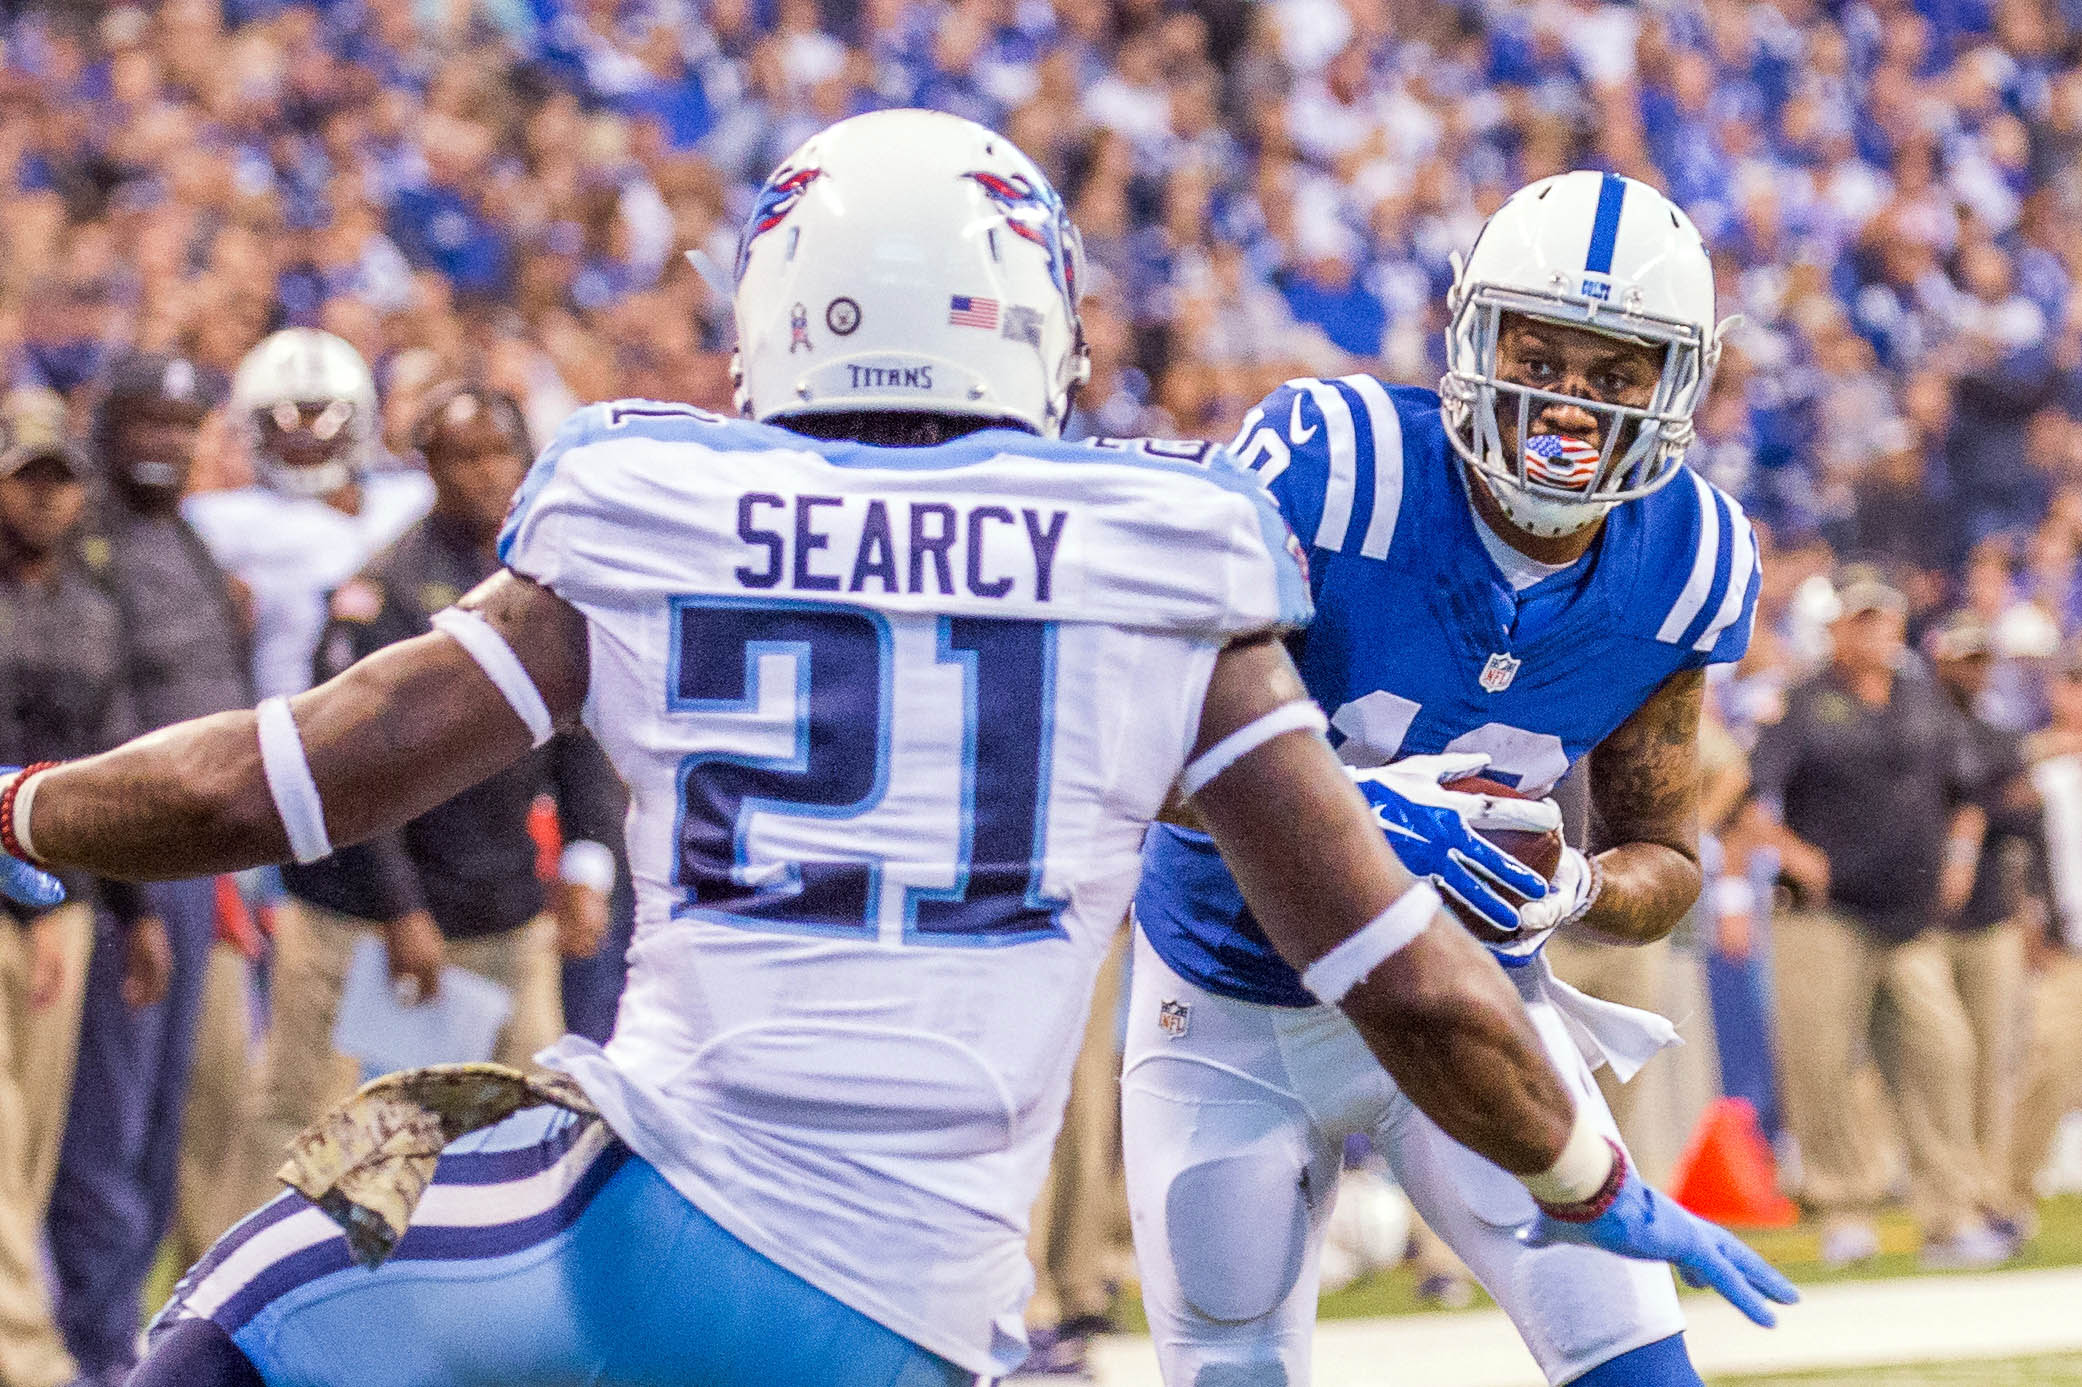 9693381-nfl-tennessee-titans-at-indianapolis-colts